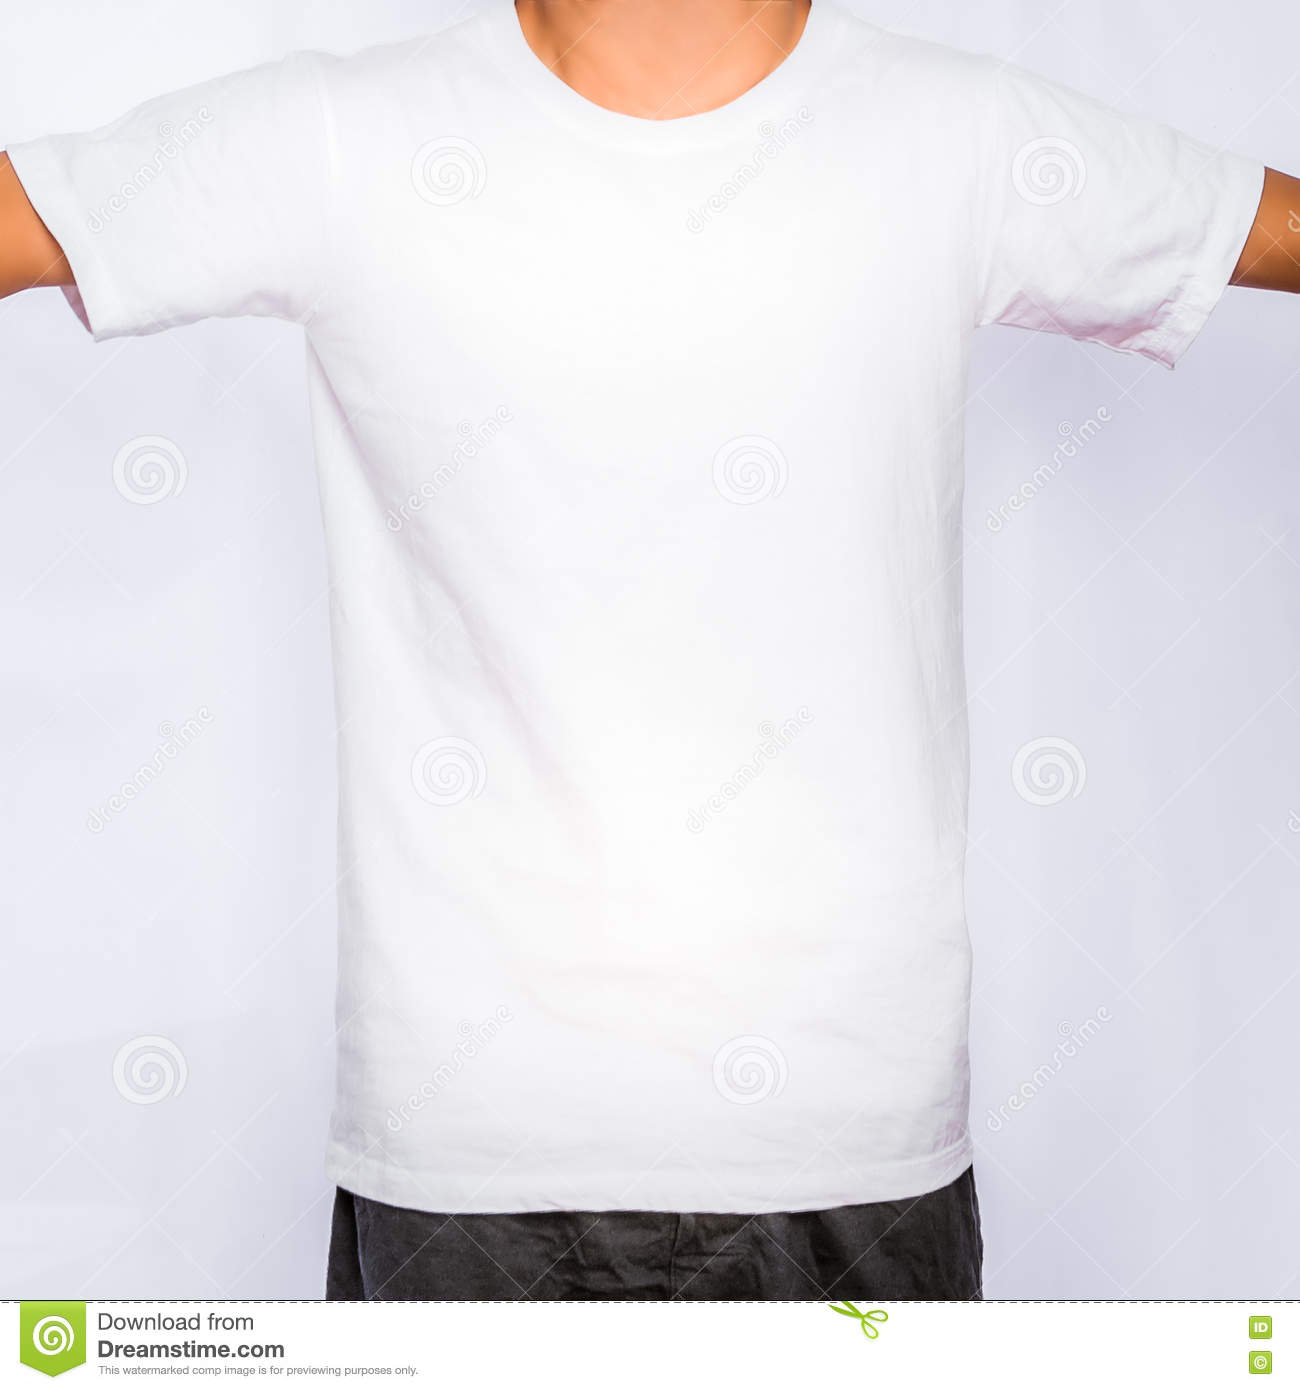 T shirt white mockup - Blank Design Front Mockup Shirt Template White